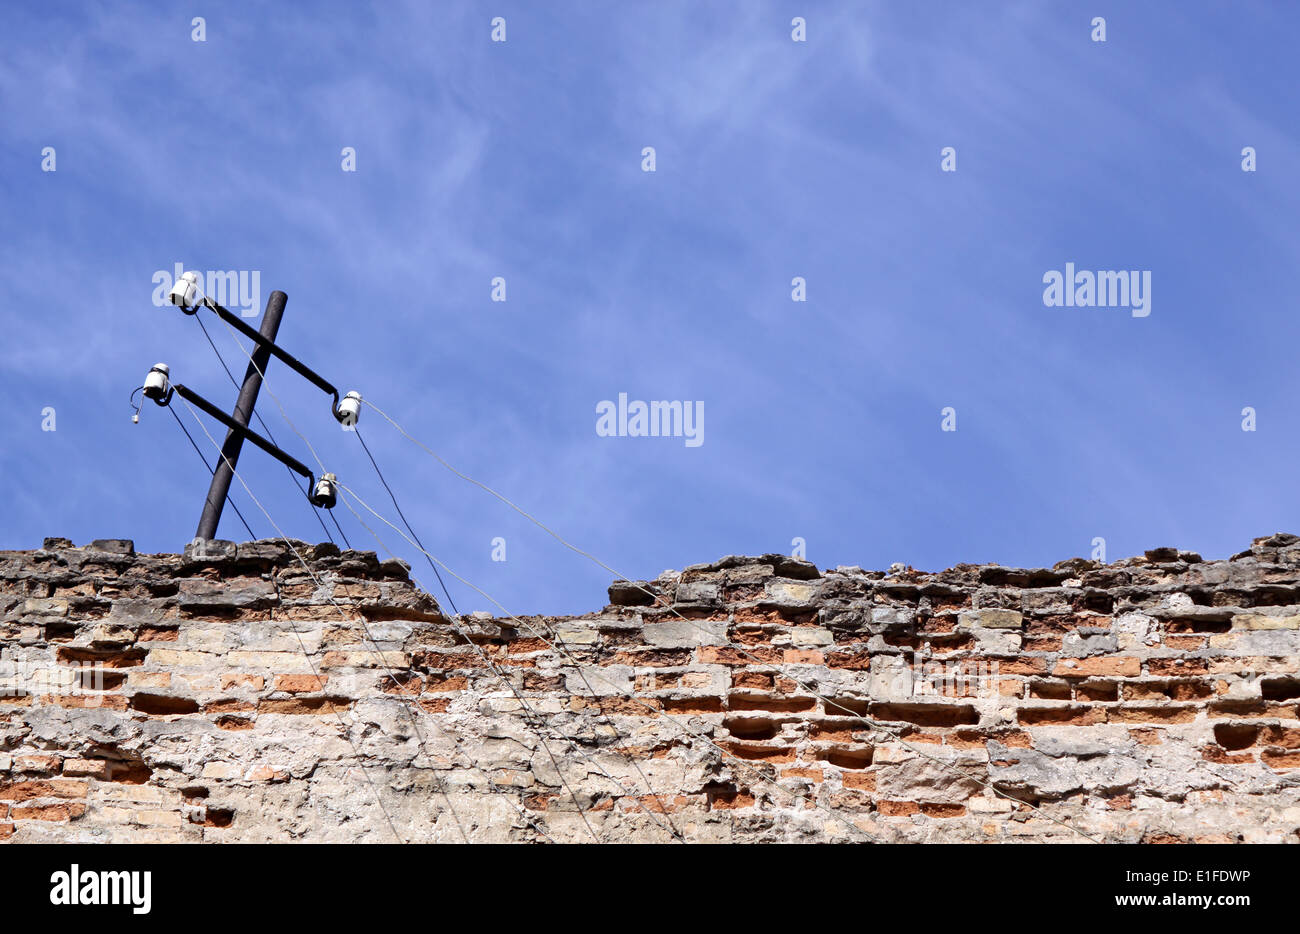 Collapsing telephone pole on the brick wall with plenty of copy space - Stock Image